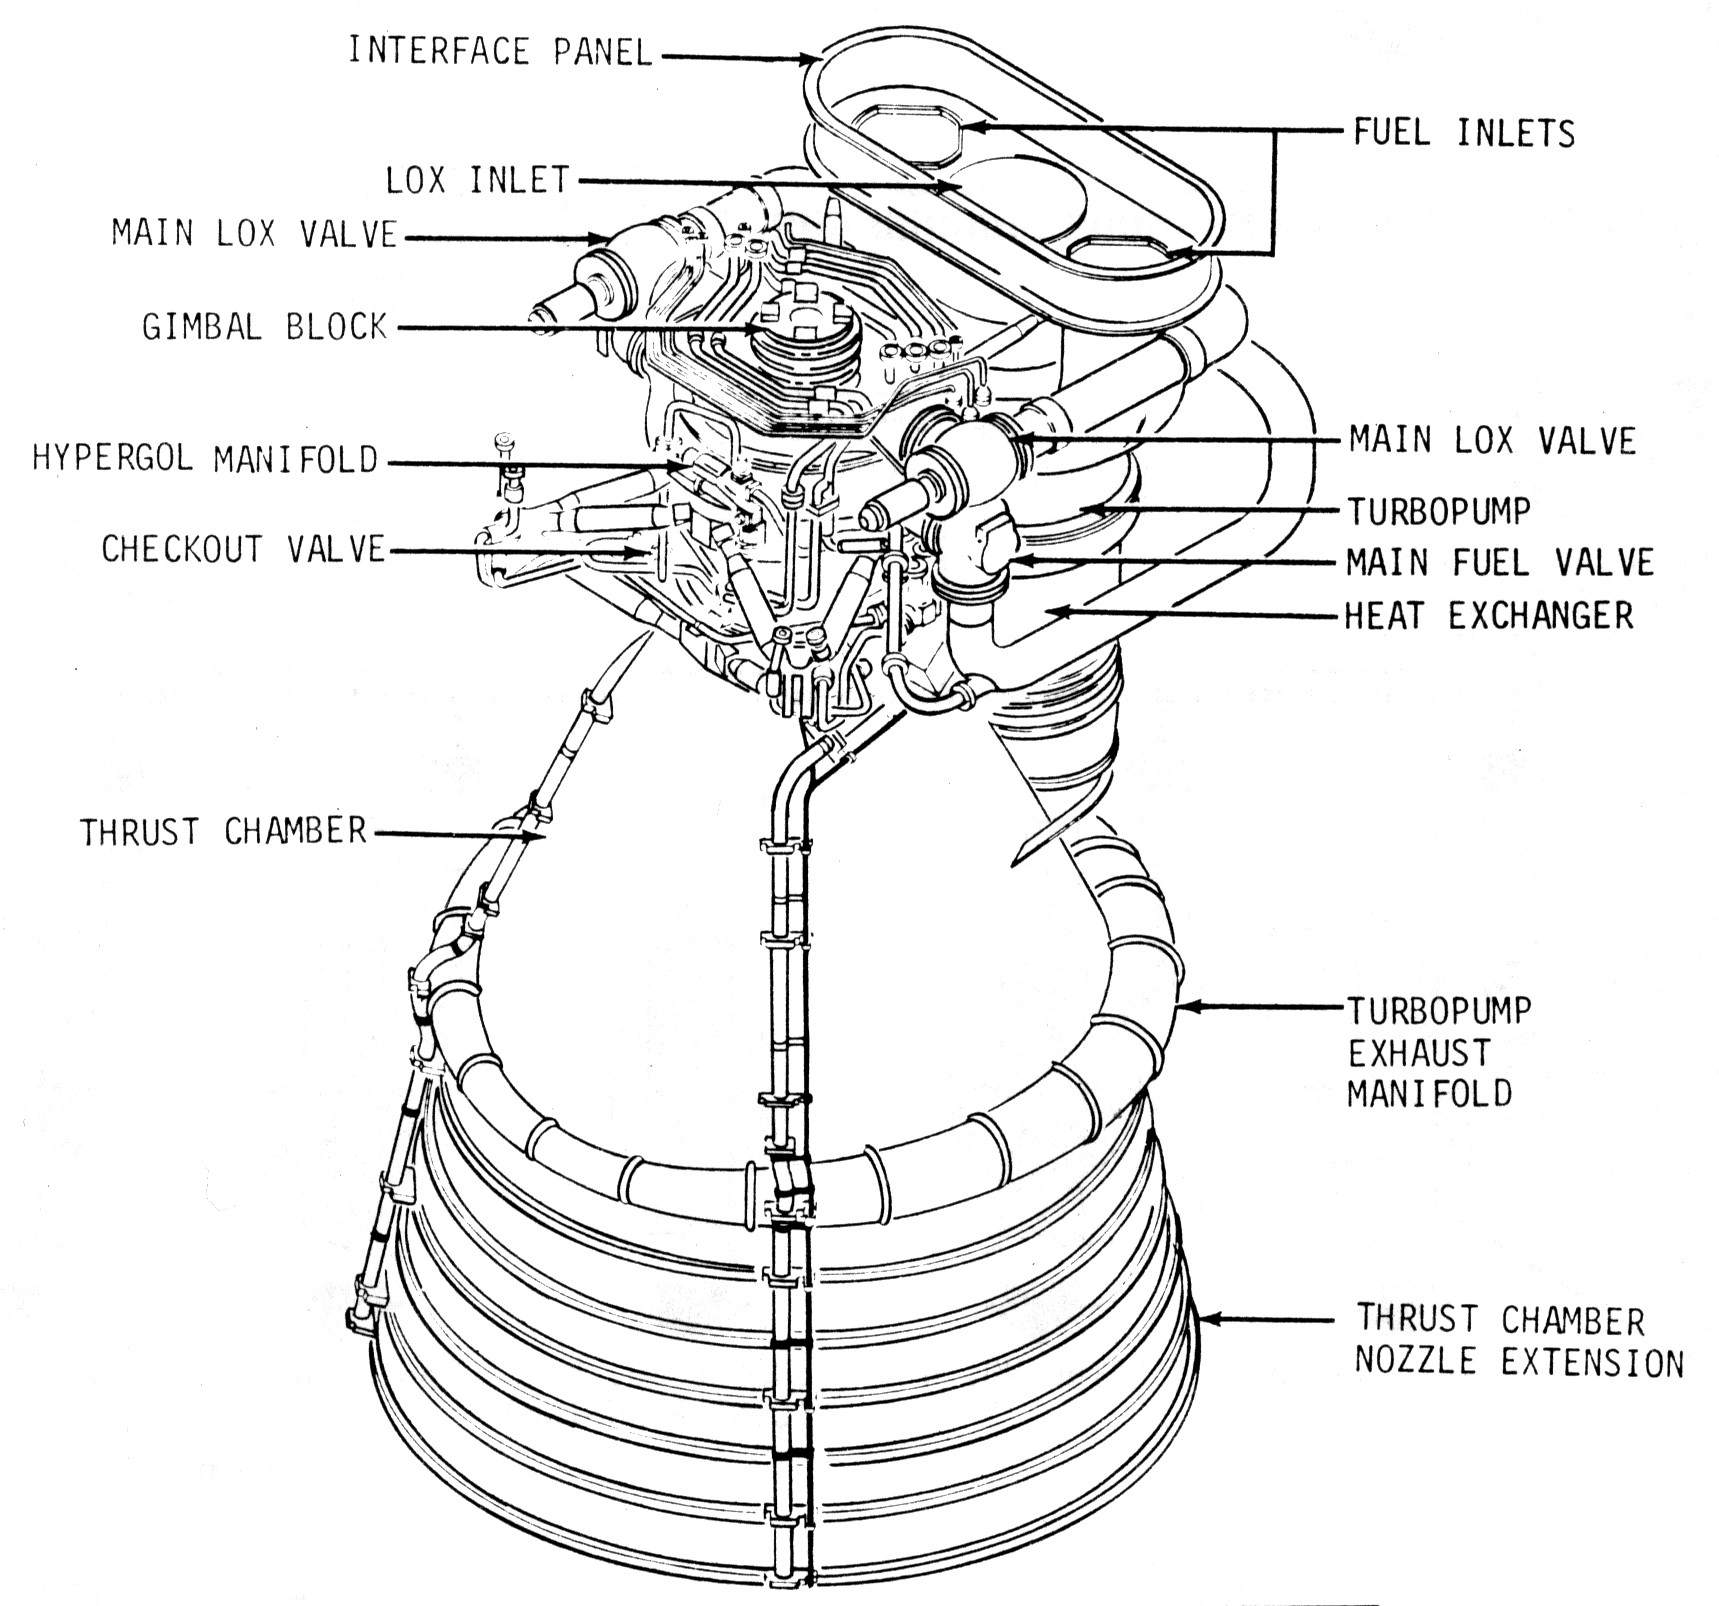 1948 ford f1 wiring diagram f-1 engine - propulsion of the saturn v moon rocket f1 engine diagram #12